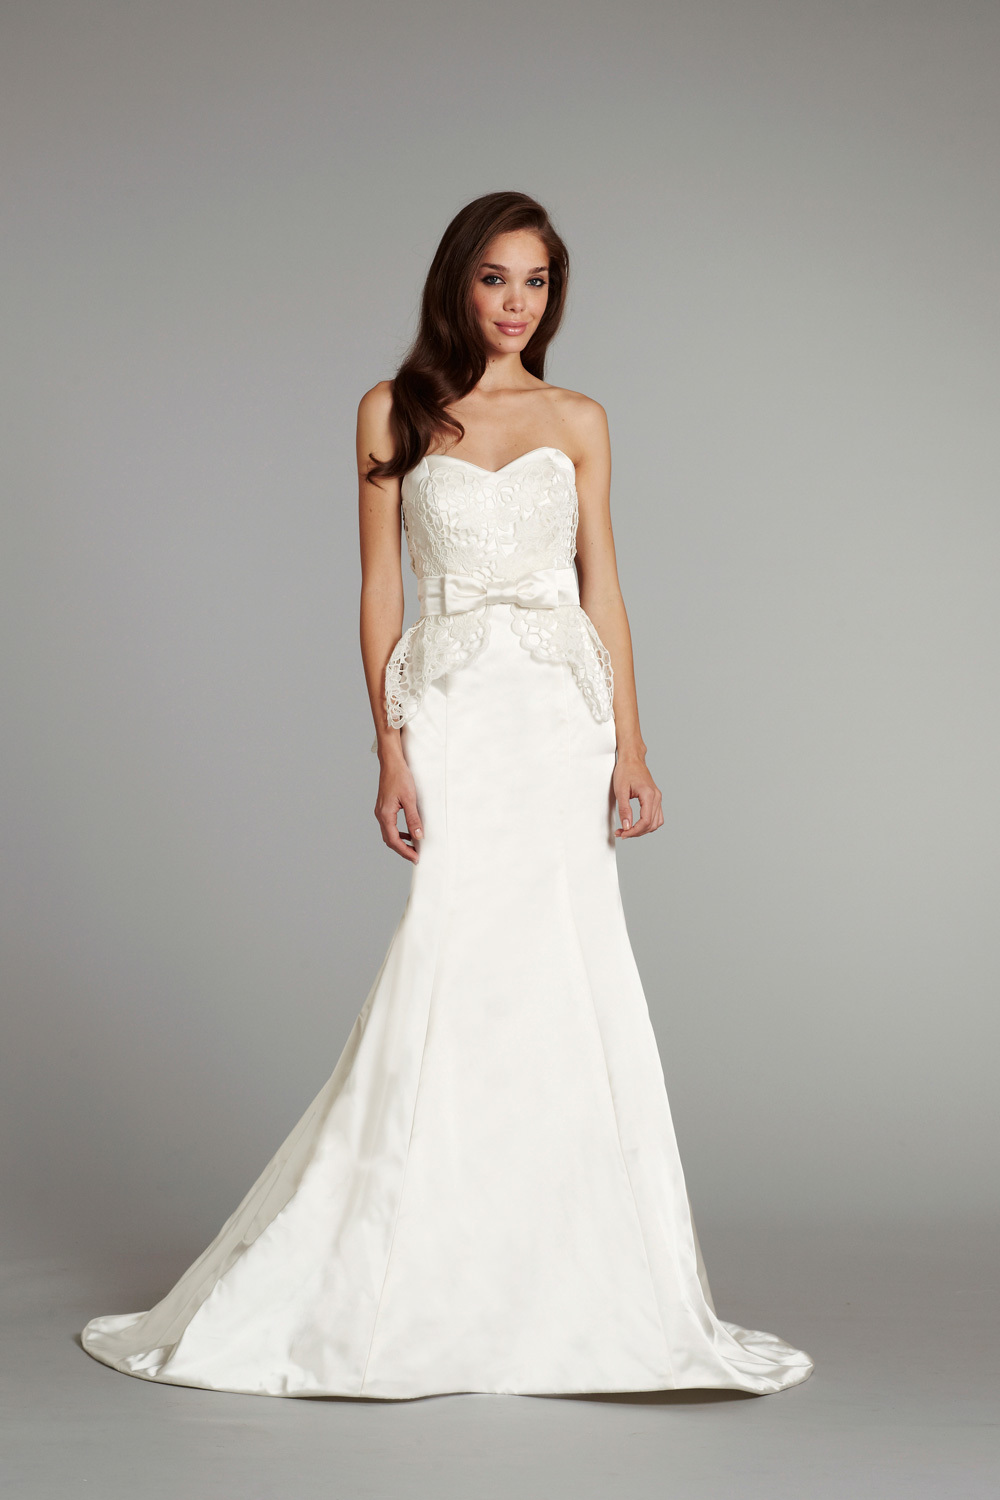 new bridal gowns fall 2012 wedding dress hayley paige for JLM couture Sloane